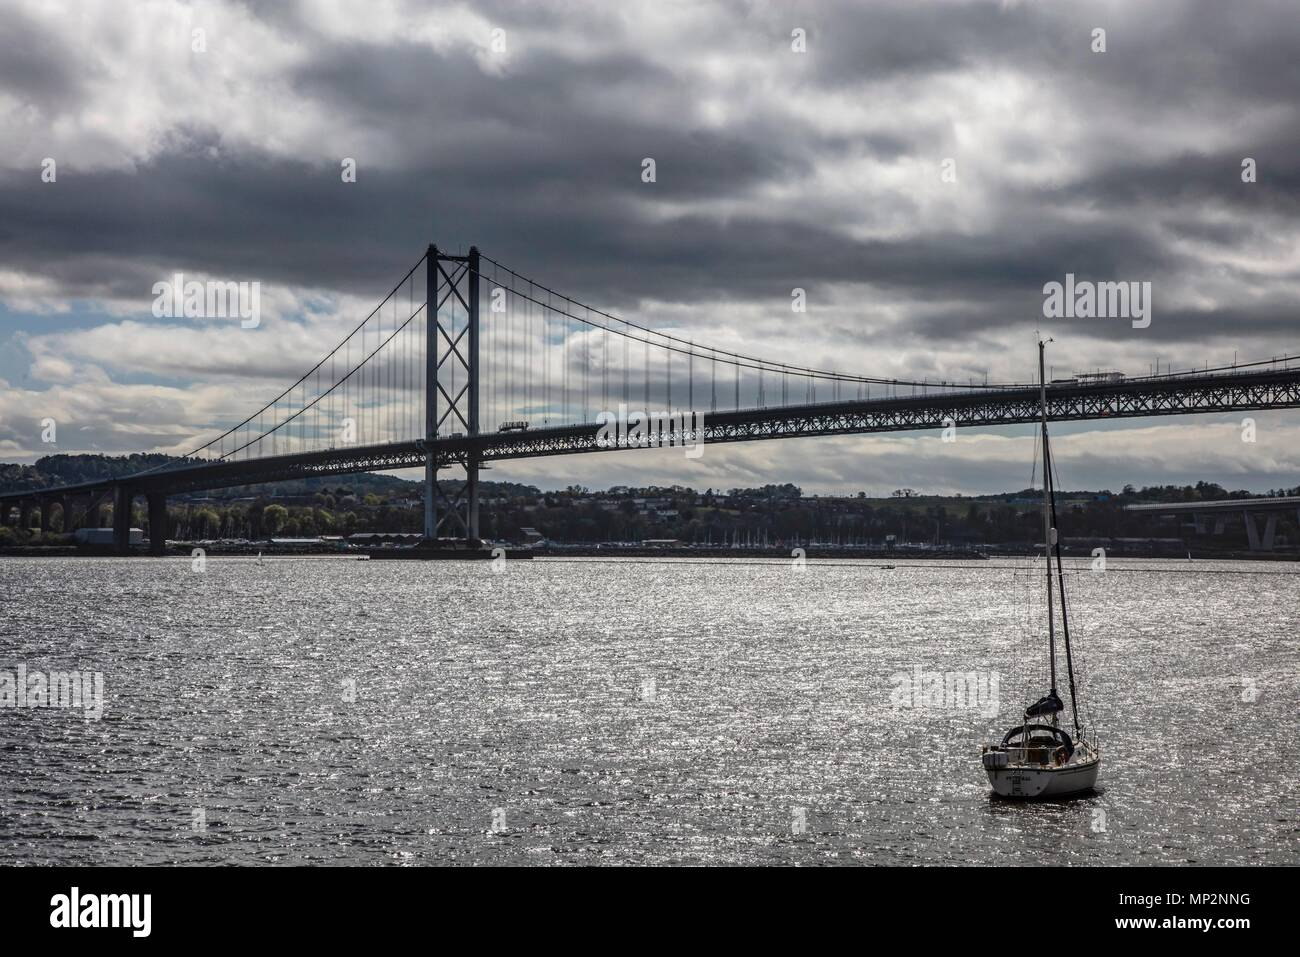 Forth Rail Bridge, North Queensferry, Scotland - Stock Image